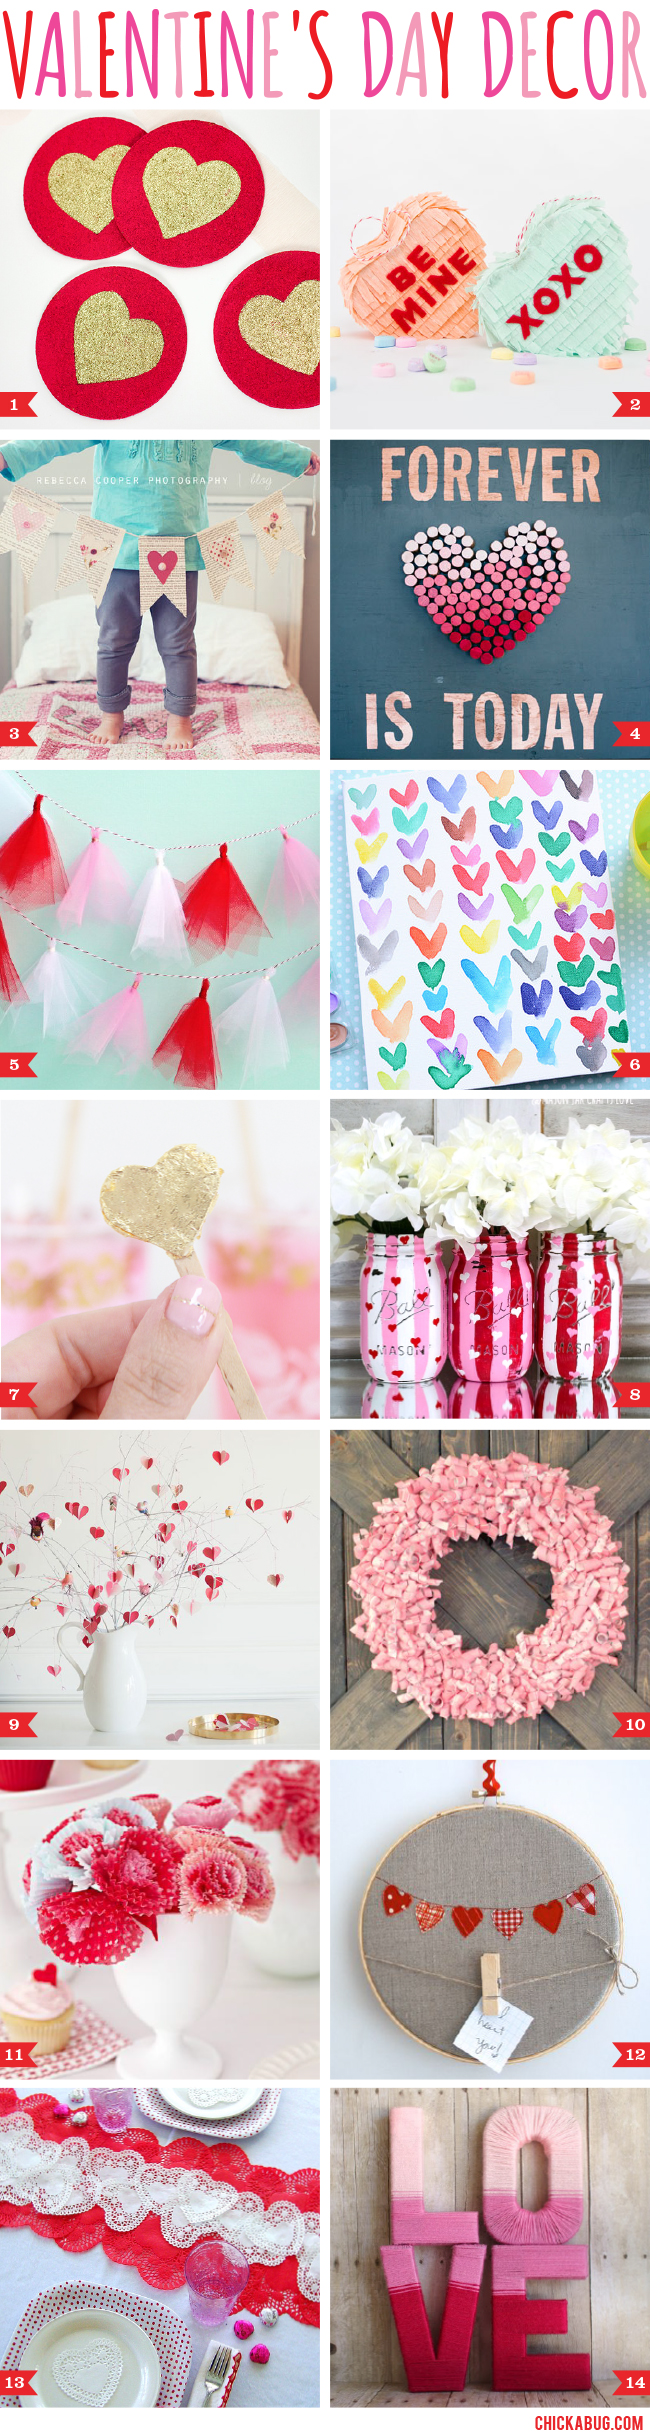 14 adorable Valentine's Day decor ideas! #valentinesday